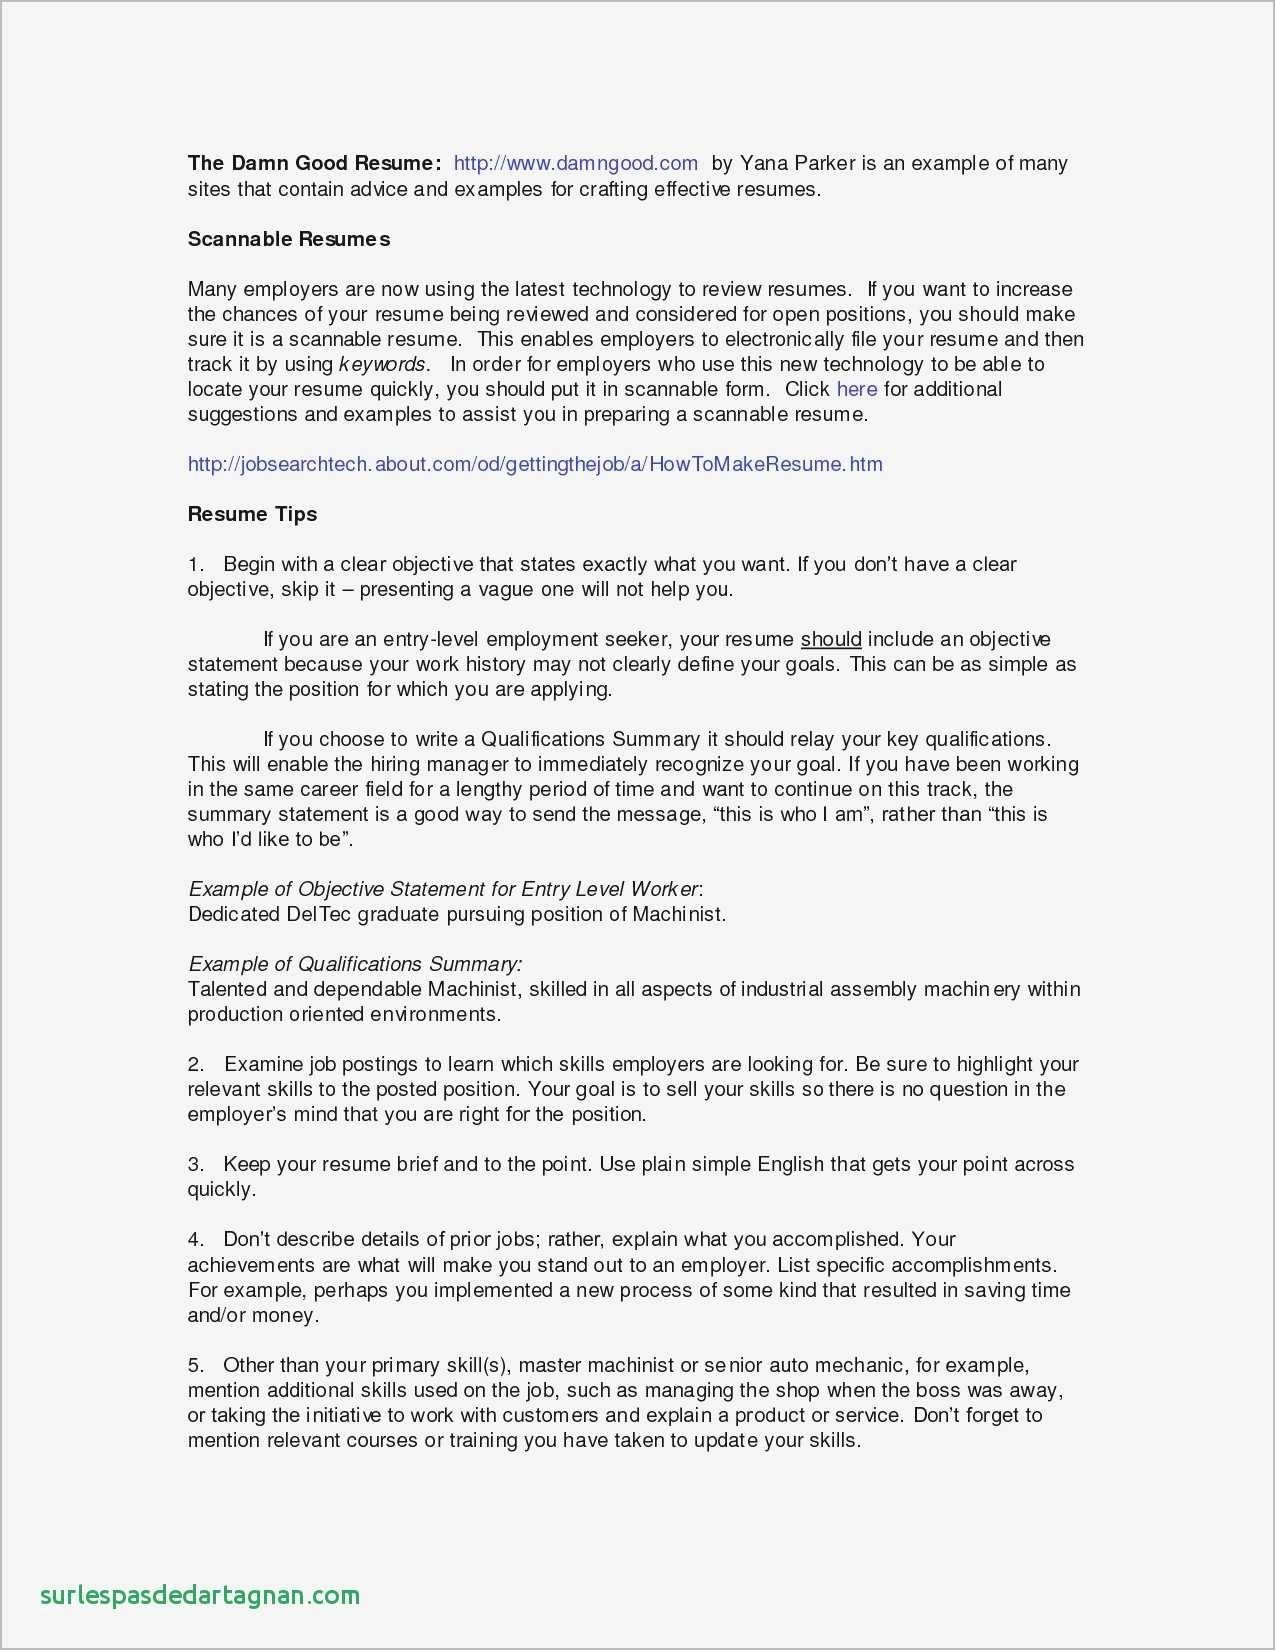 Military Resume Writing - Army to Civilian Resume Examples Save Military Resume Examples